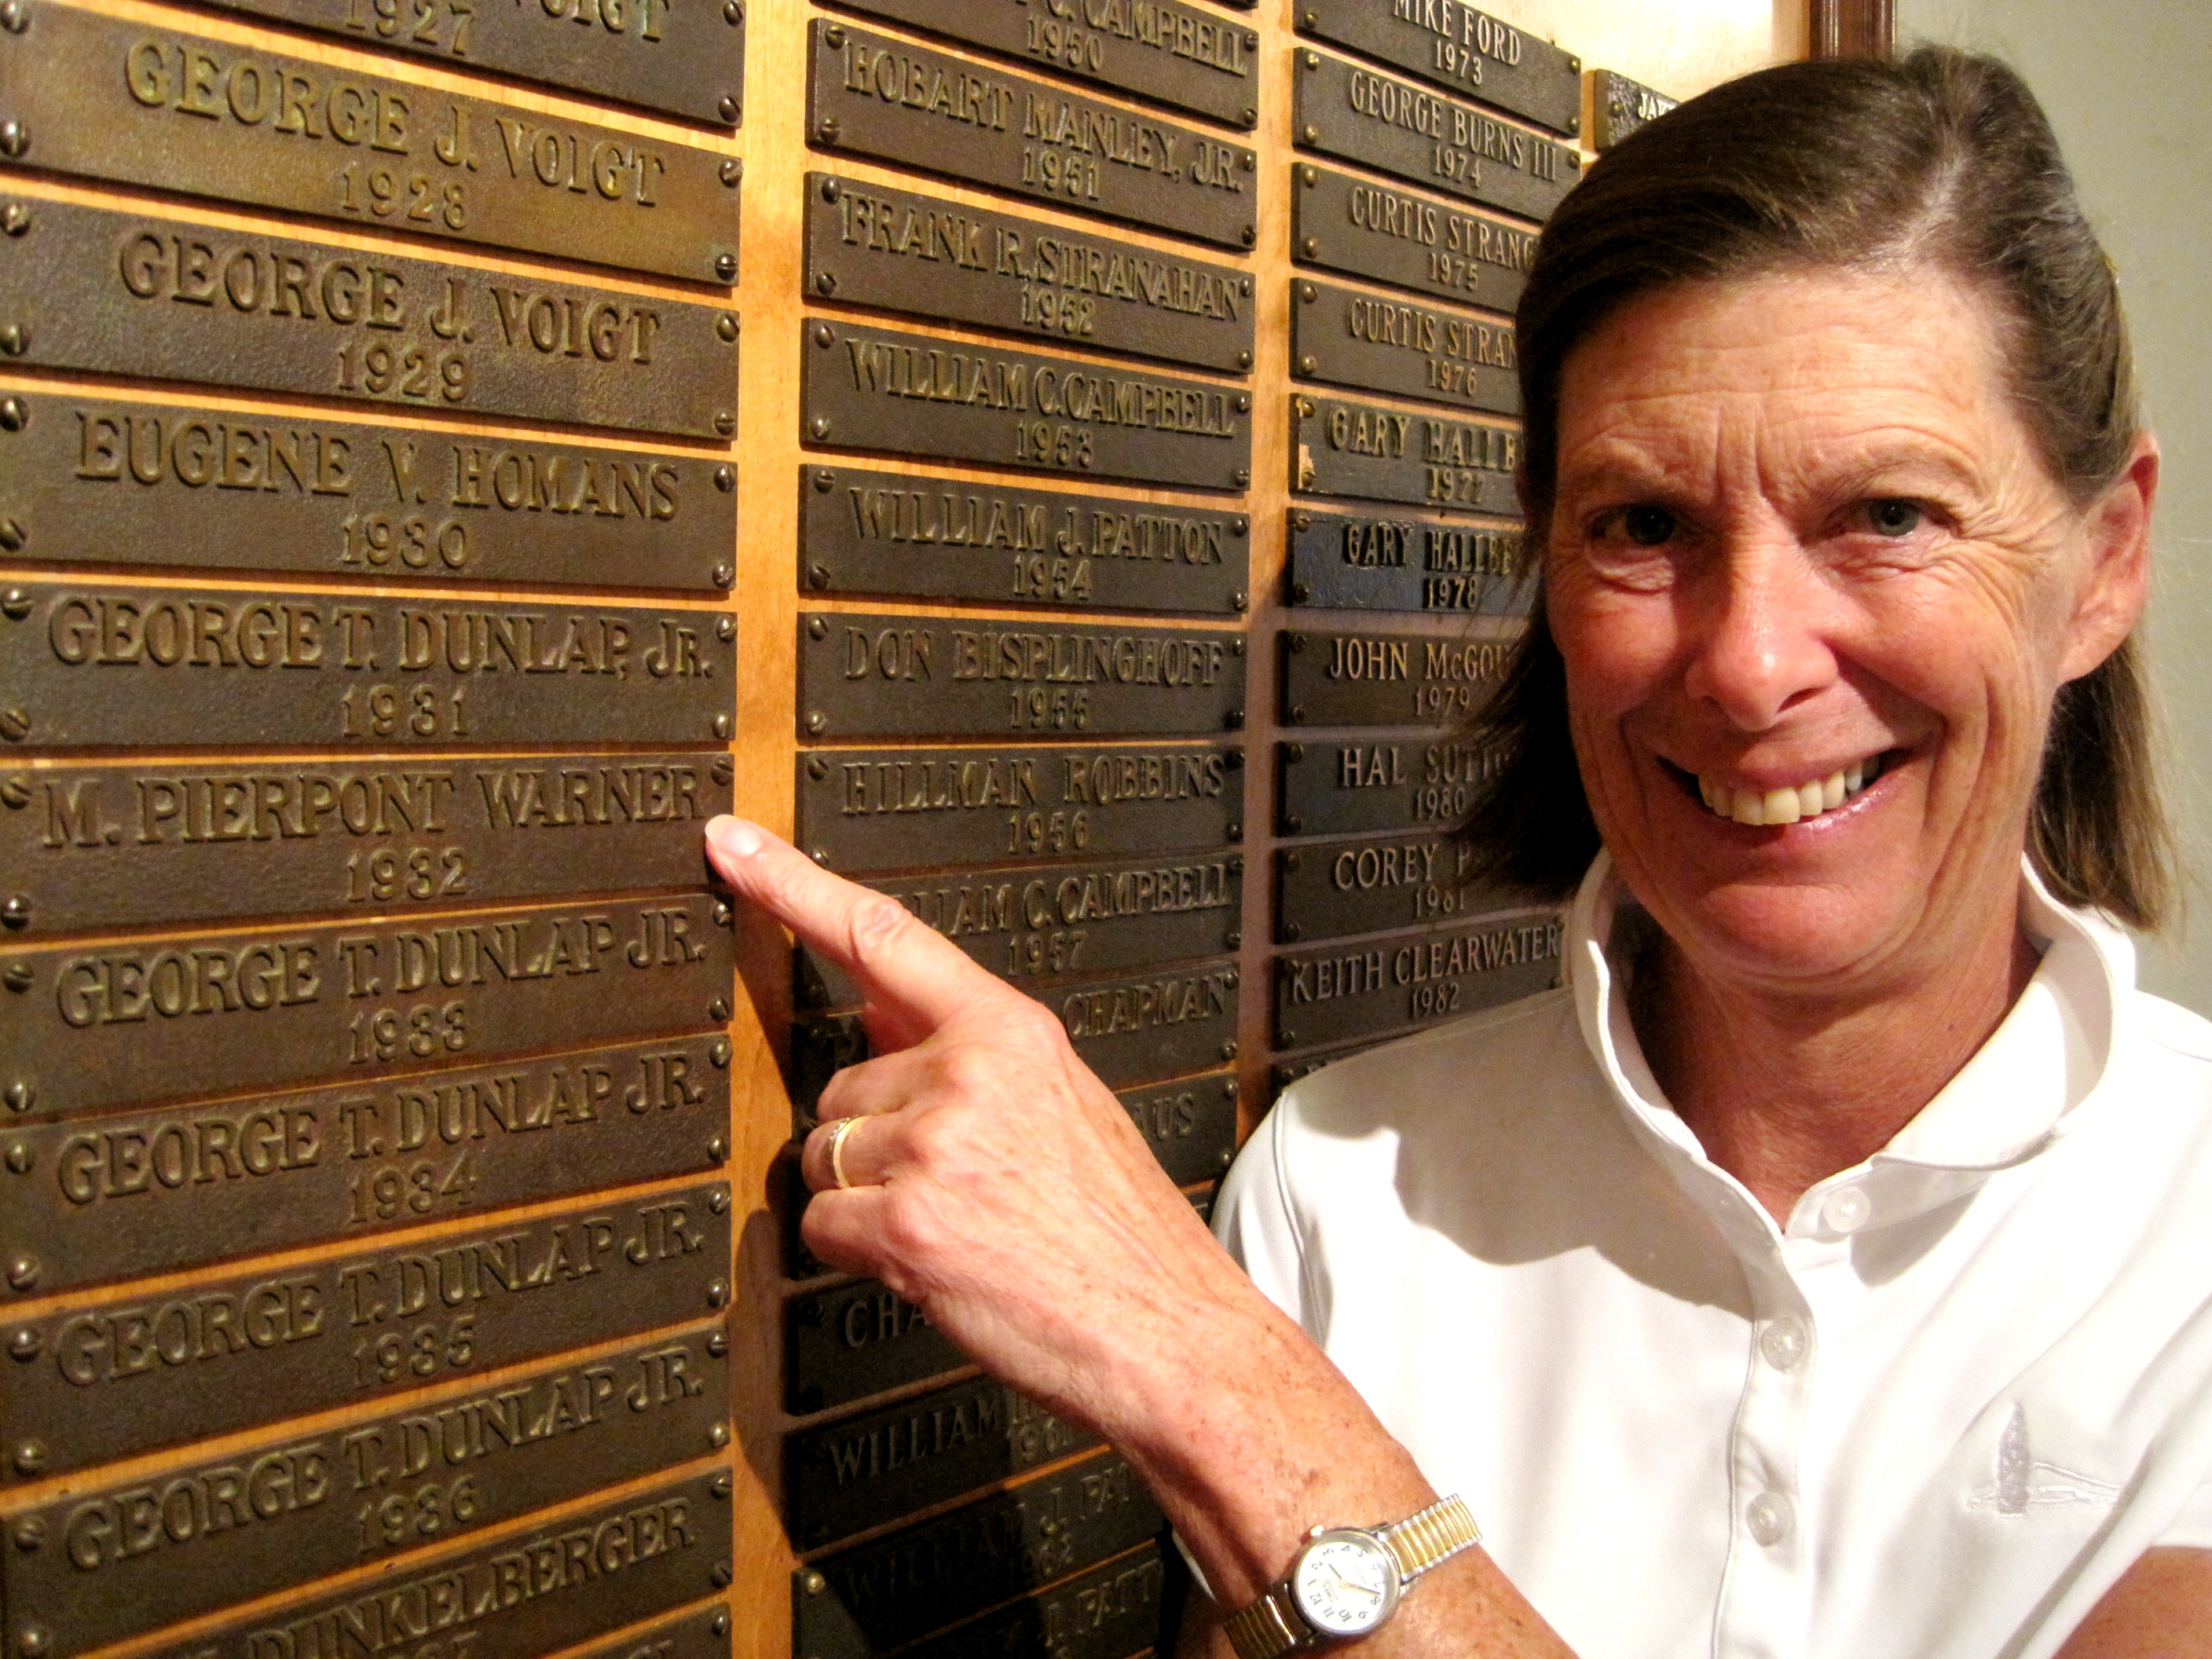 Lili Geehr points to her father's name, M. Pierpont Warner, on the North and South Amateur Champion Wall of Perpetuity at Pinehurst Resort.